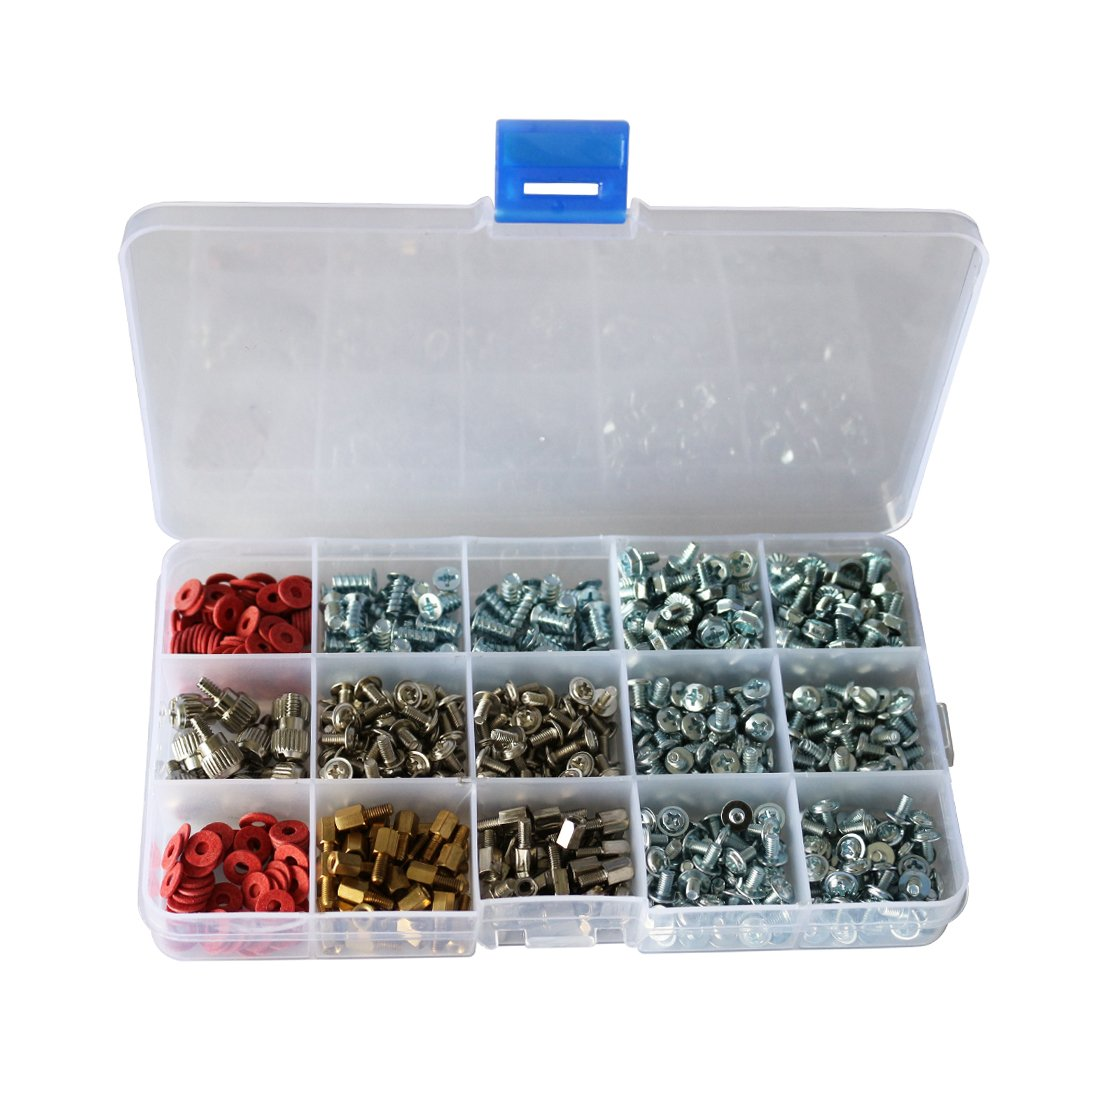 CO RODE PC Computer Screws Standoffs Fan Hard Drives Thumb Screw Set Assortment Kit for Mother Board